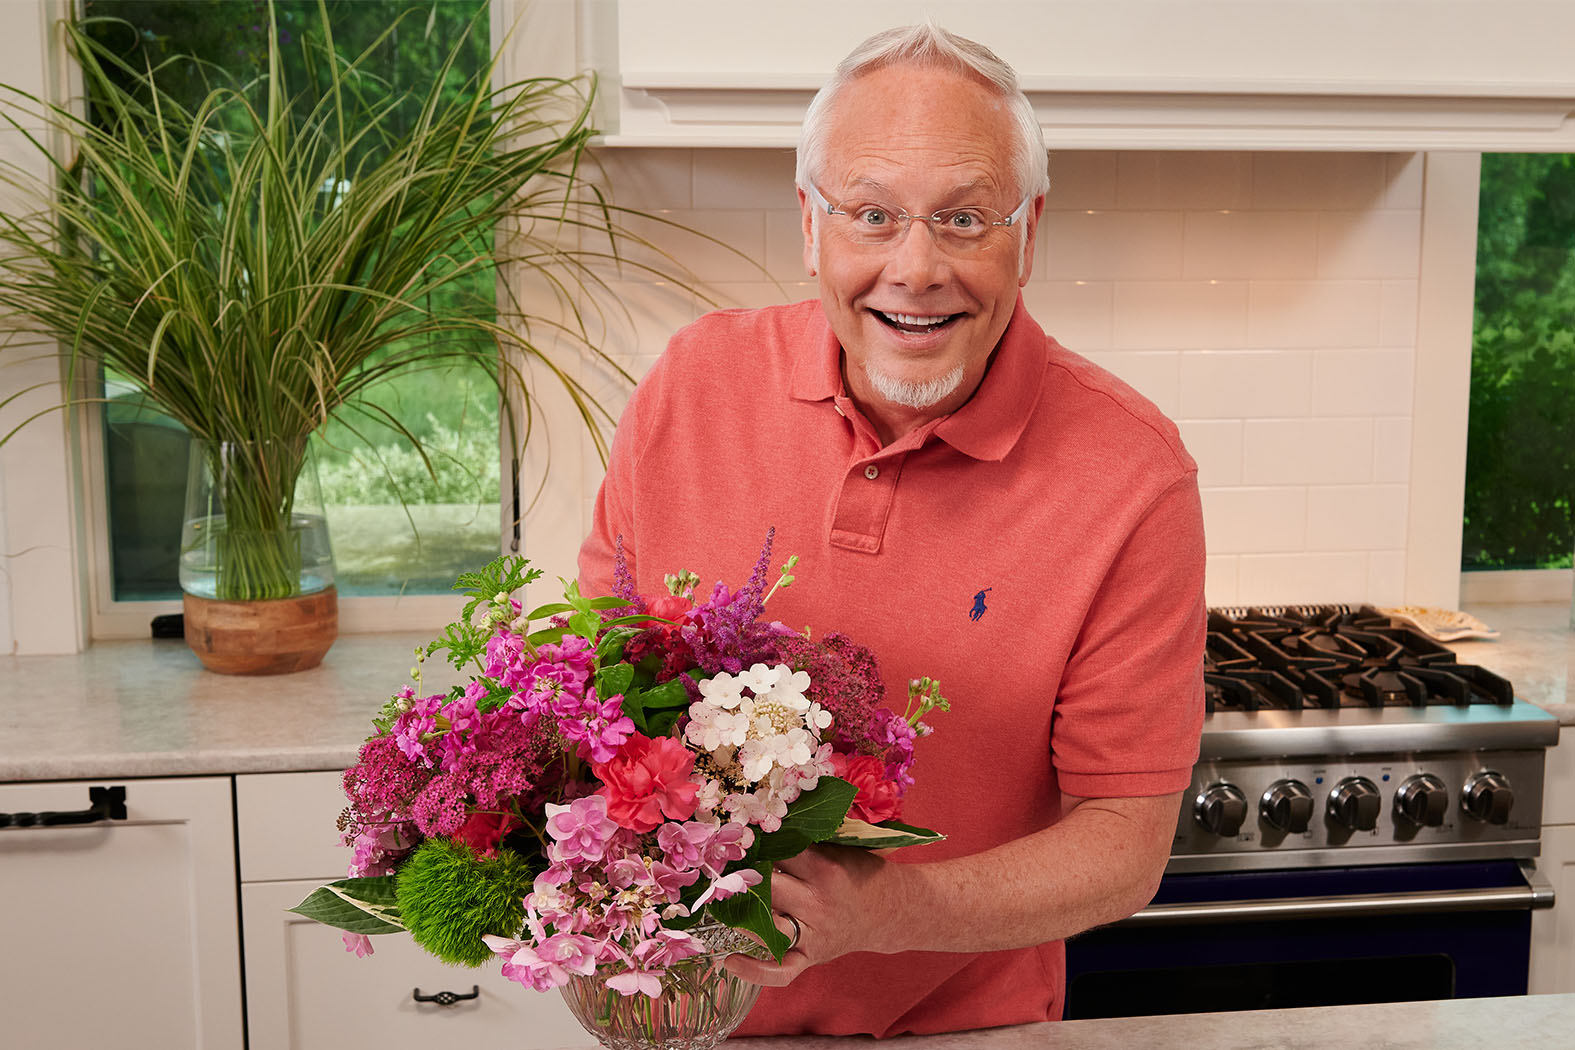 J Schwanke is honored to have been chosen as the single Vanguard on the list from the flower industry, so noted for creating the first national television show that focuses on cut flowers, specifically.